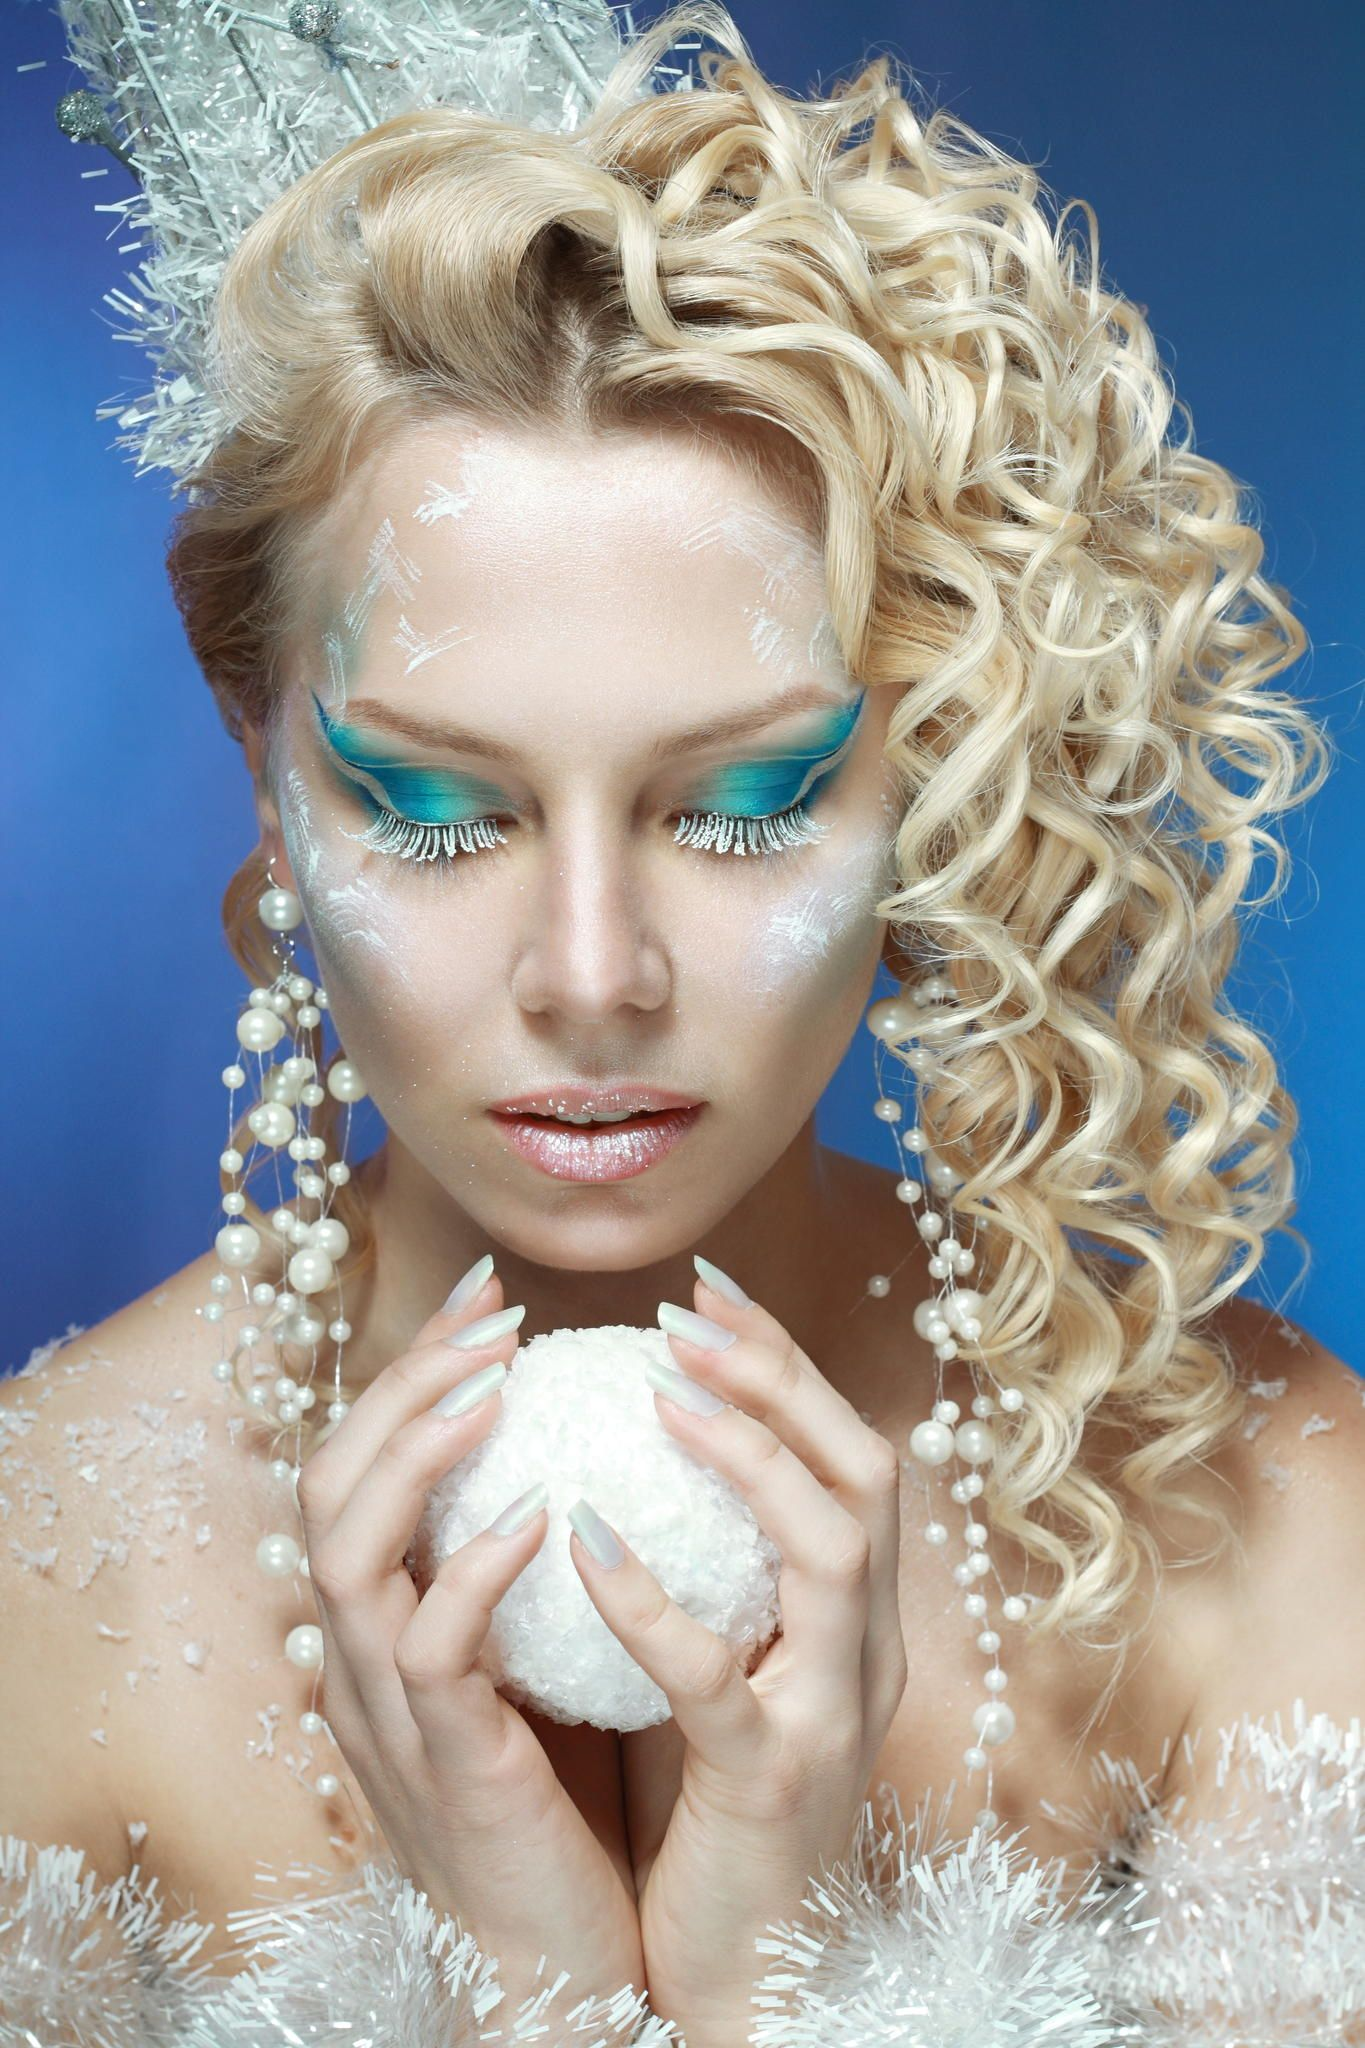 snowqueen cequeen. Young woman in creative image with